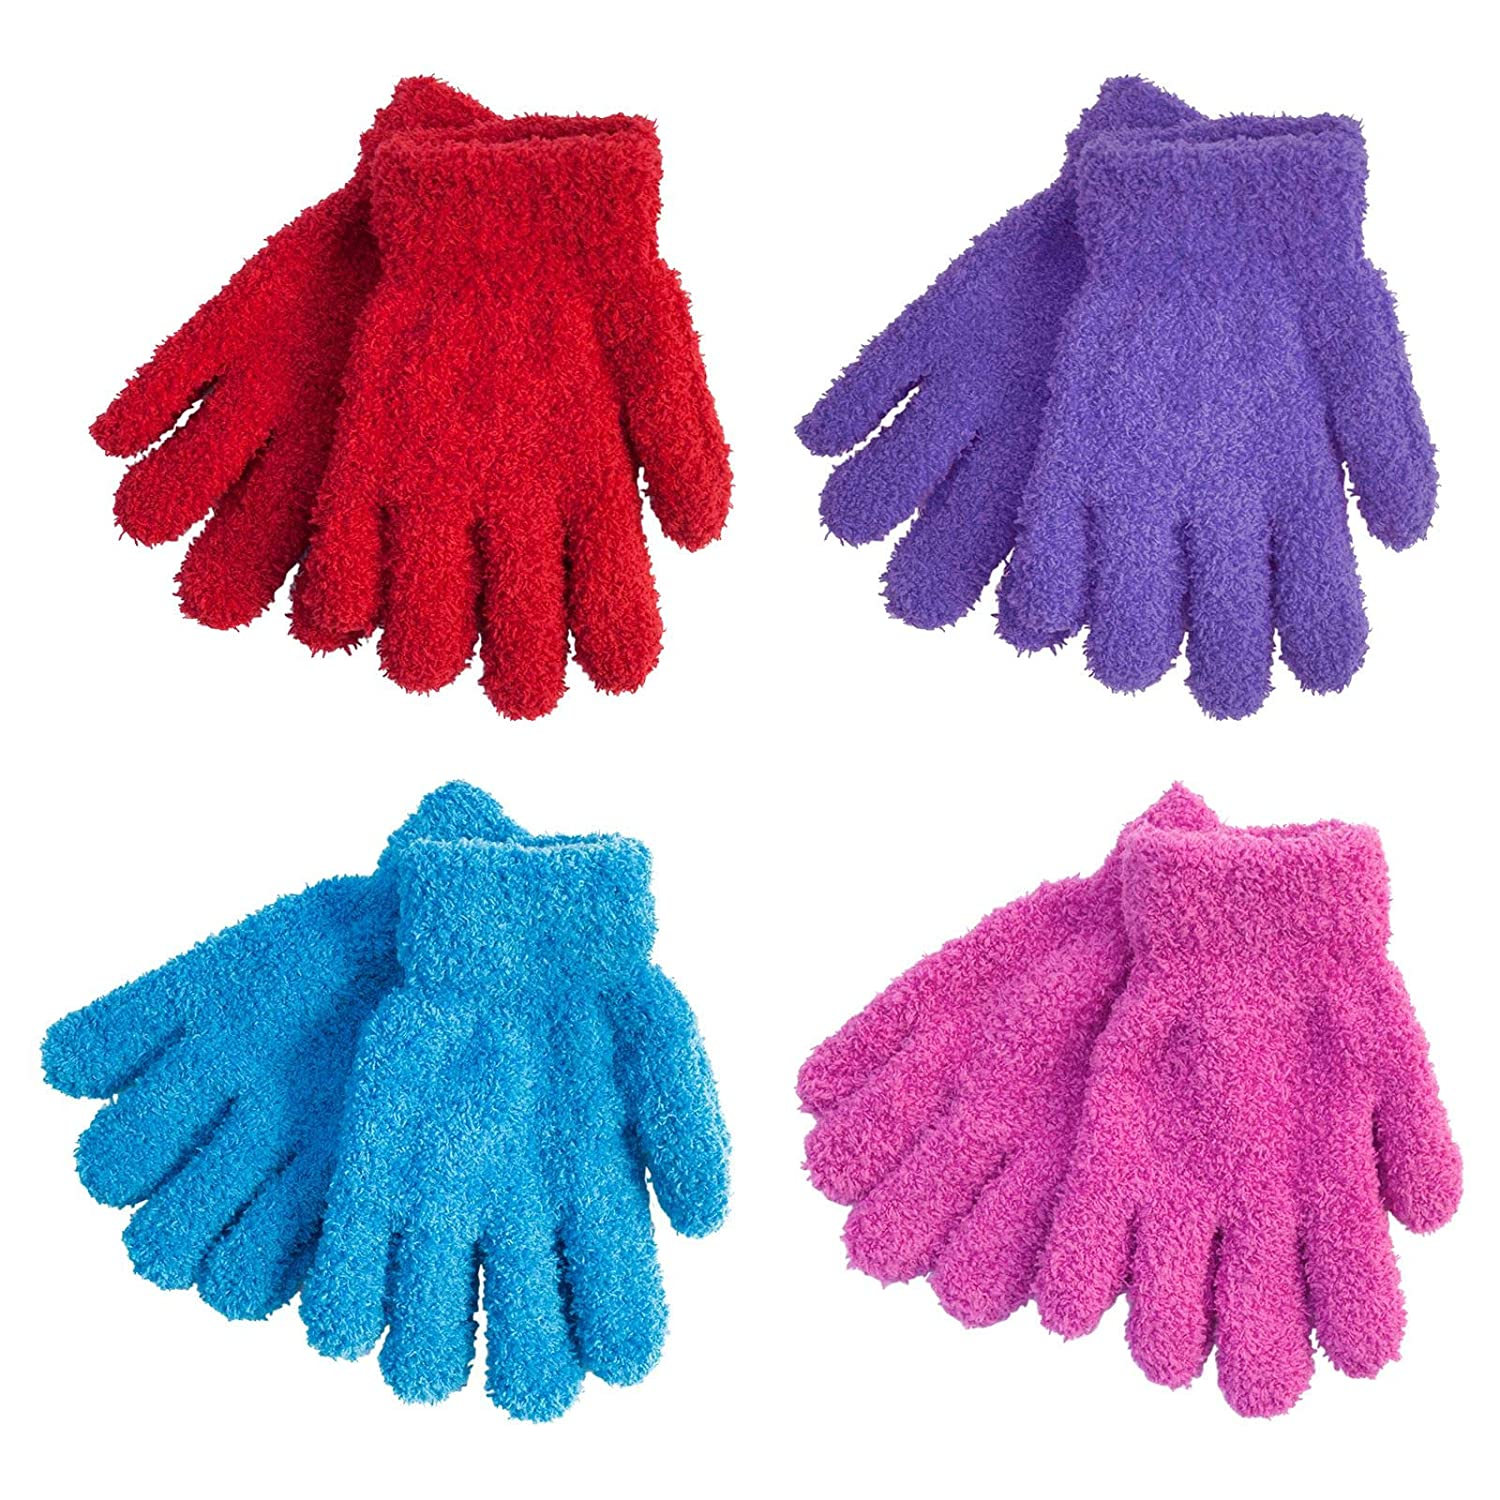 4 Pairs Childrens Magic Gloves Stretch Snow Soft Thermal Kids Winter One Size RJM